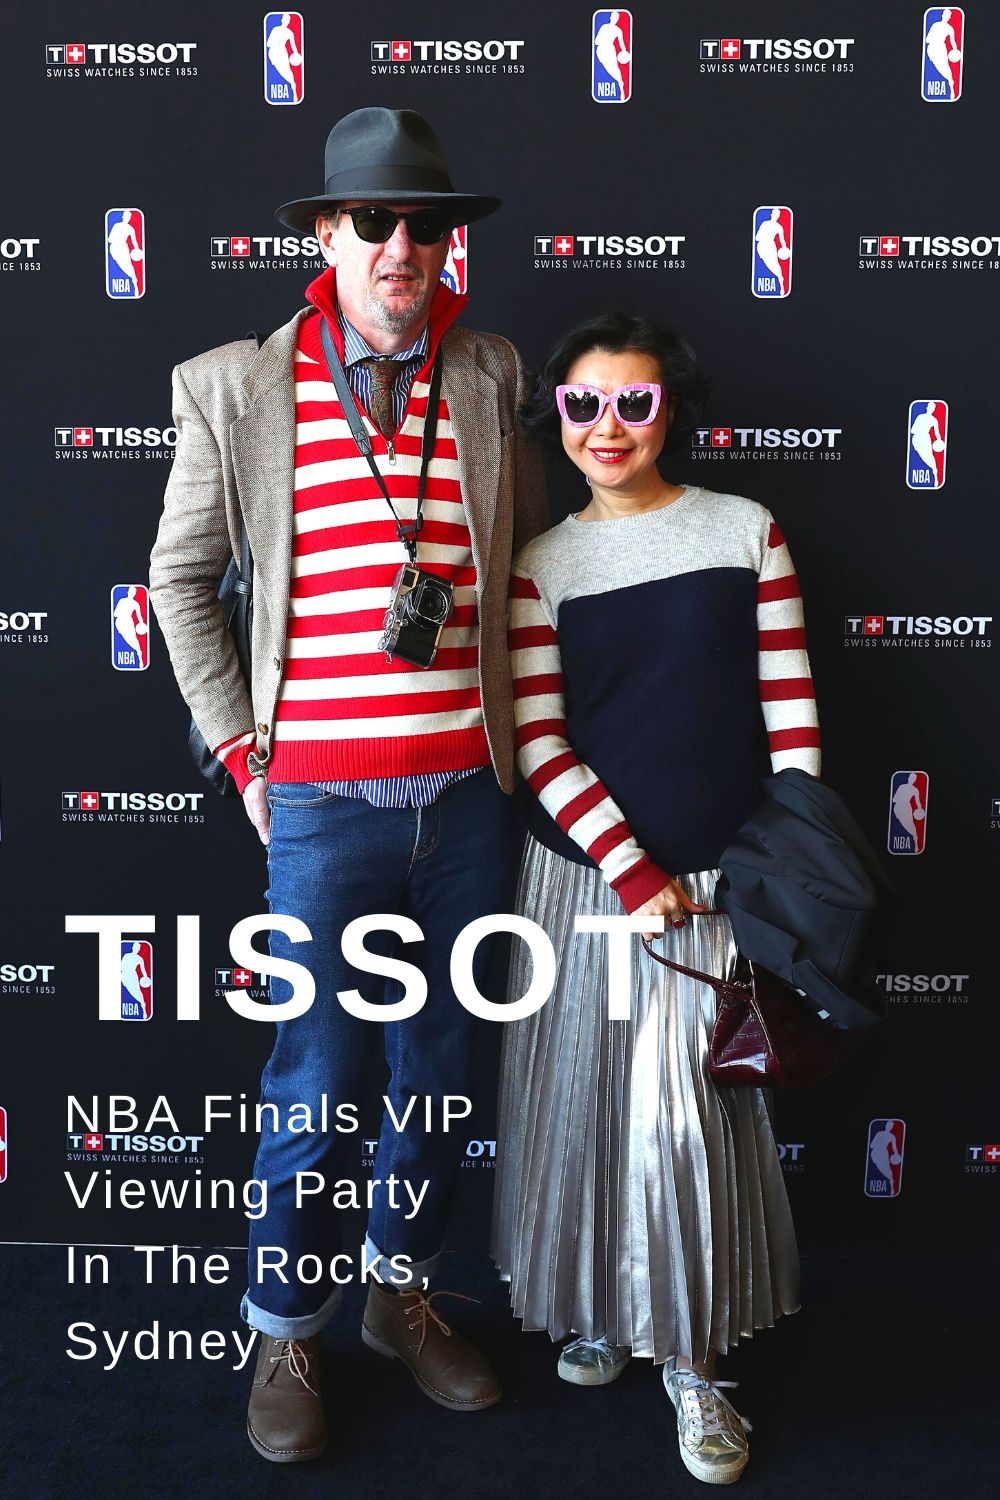 Tissot NBA Finals VIP Viewing Party in The Rocks, Sydney. Event coverage by White Caviar Life.